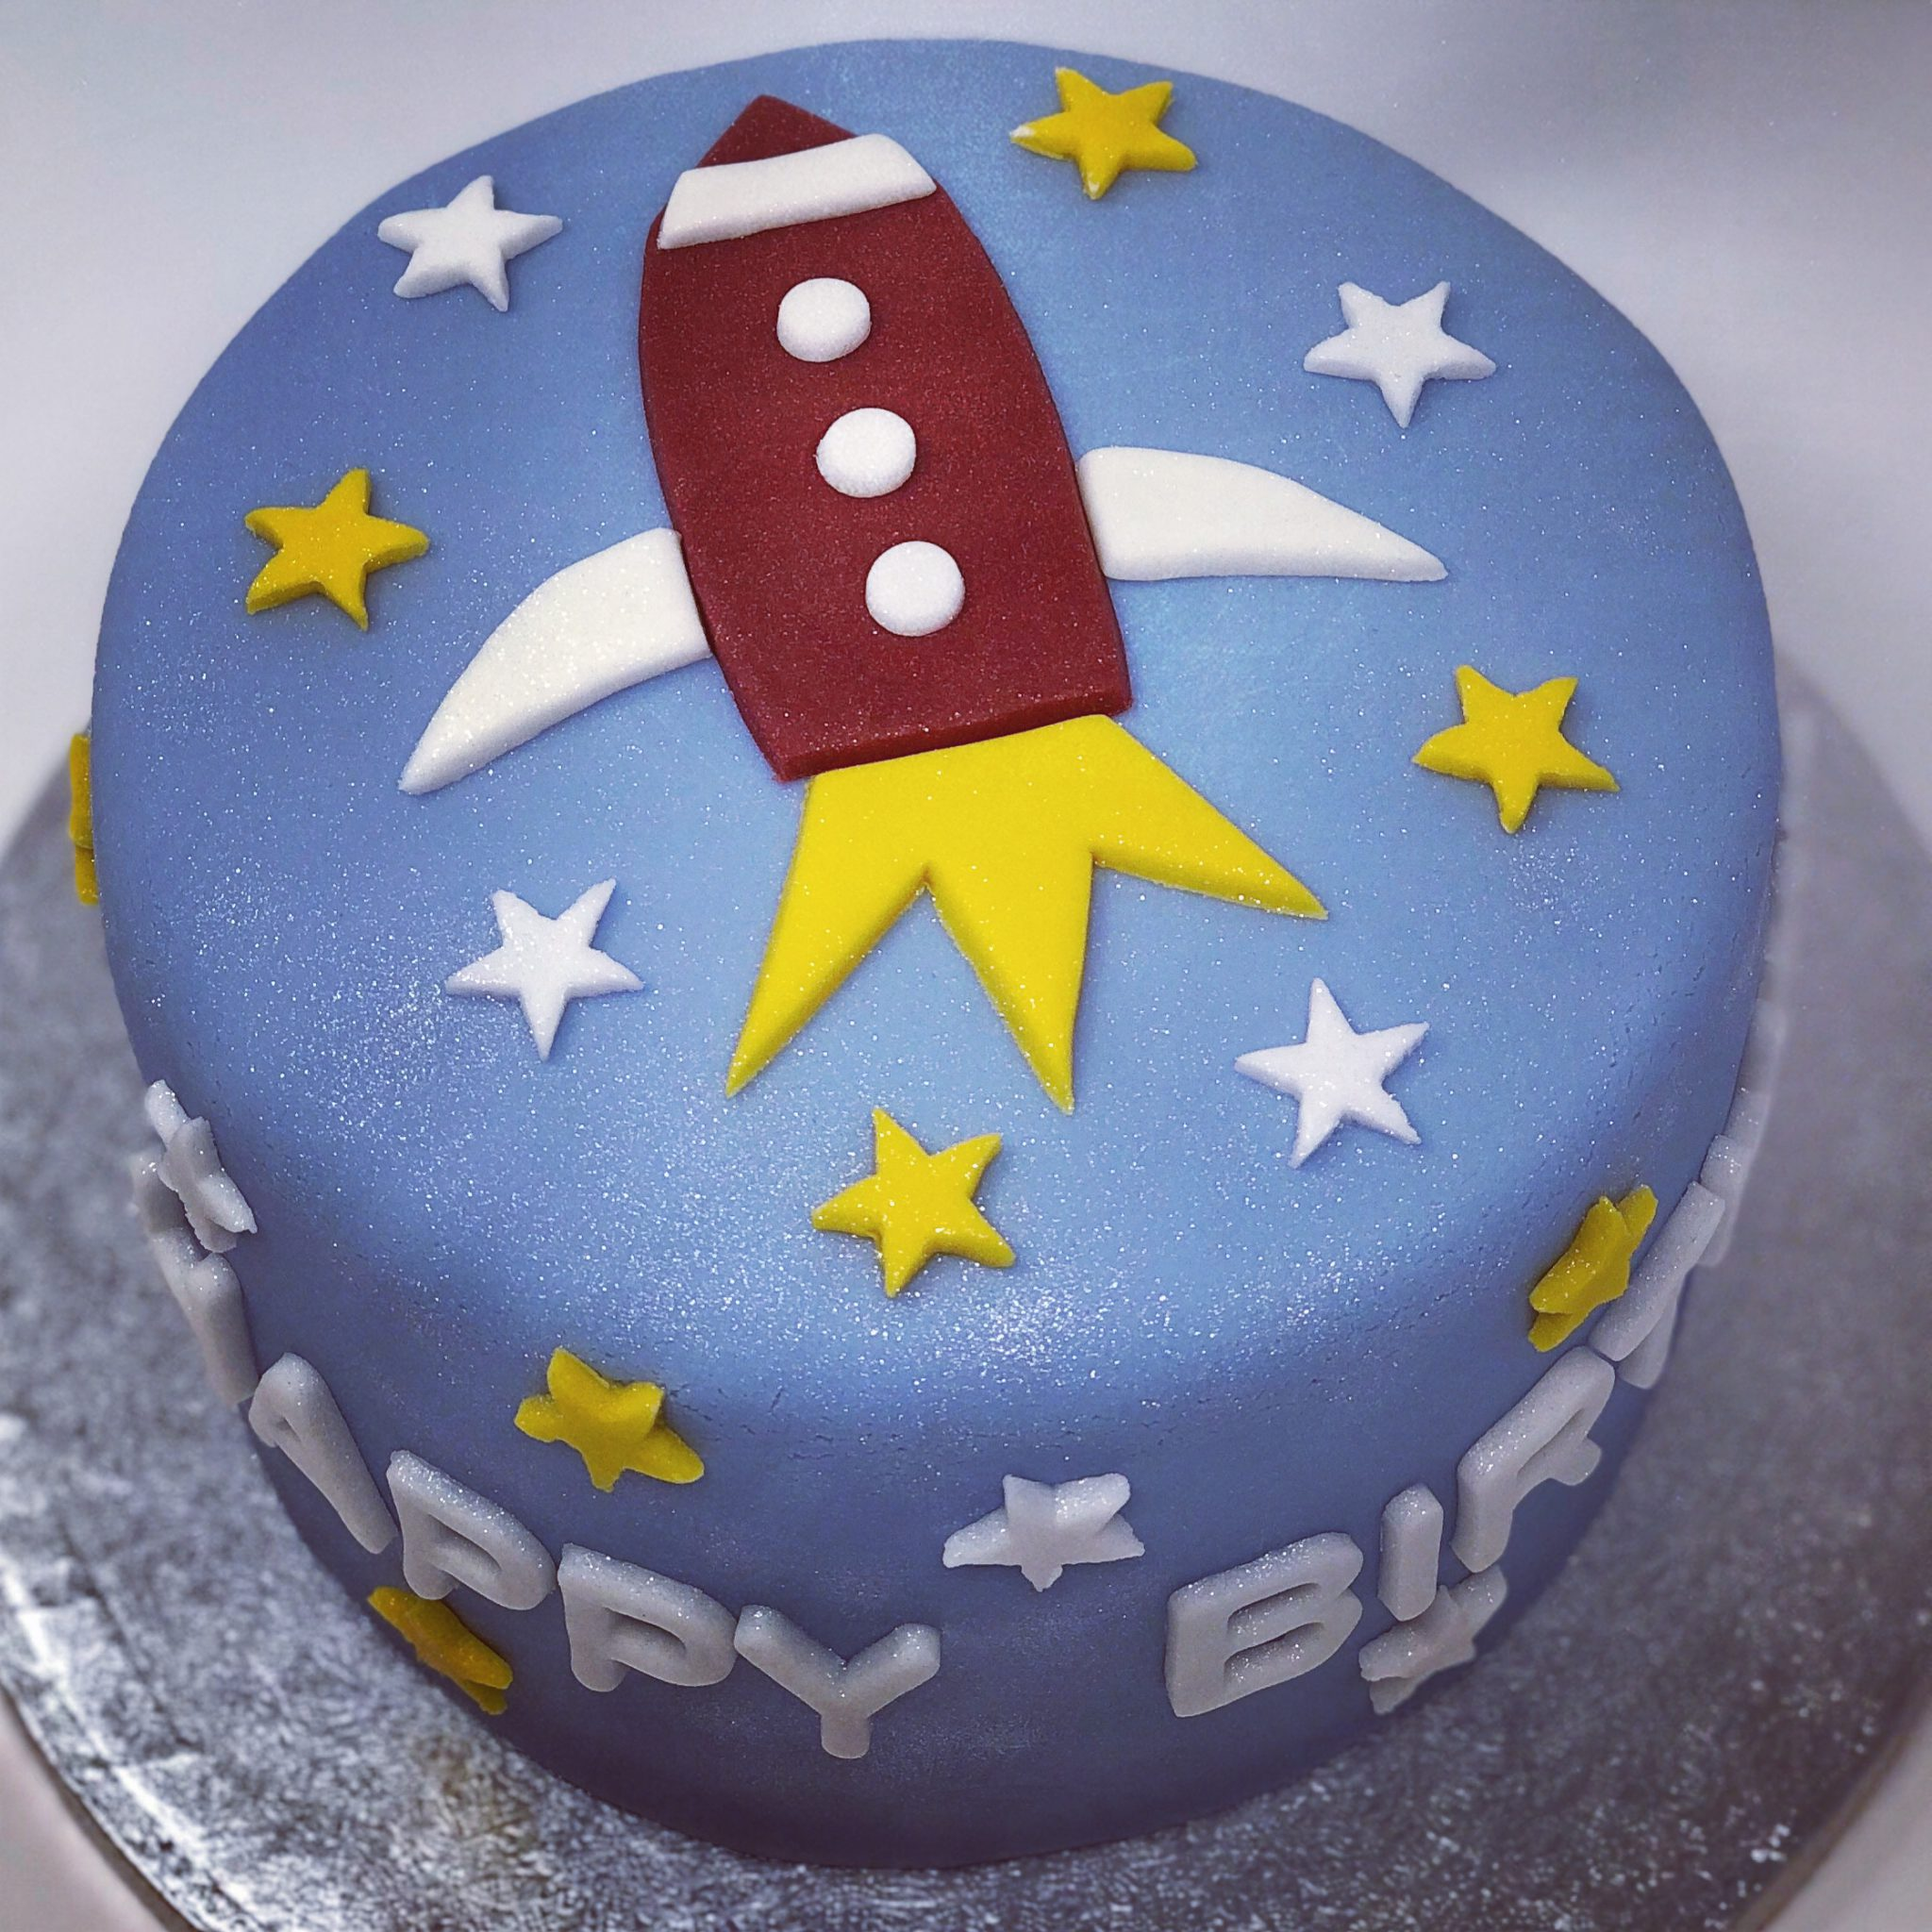 Admirable Rocketship Birthday Cake Birthday Cakes French Macaroons Funny Birthday Cards Online Overcheapnameinfo